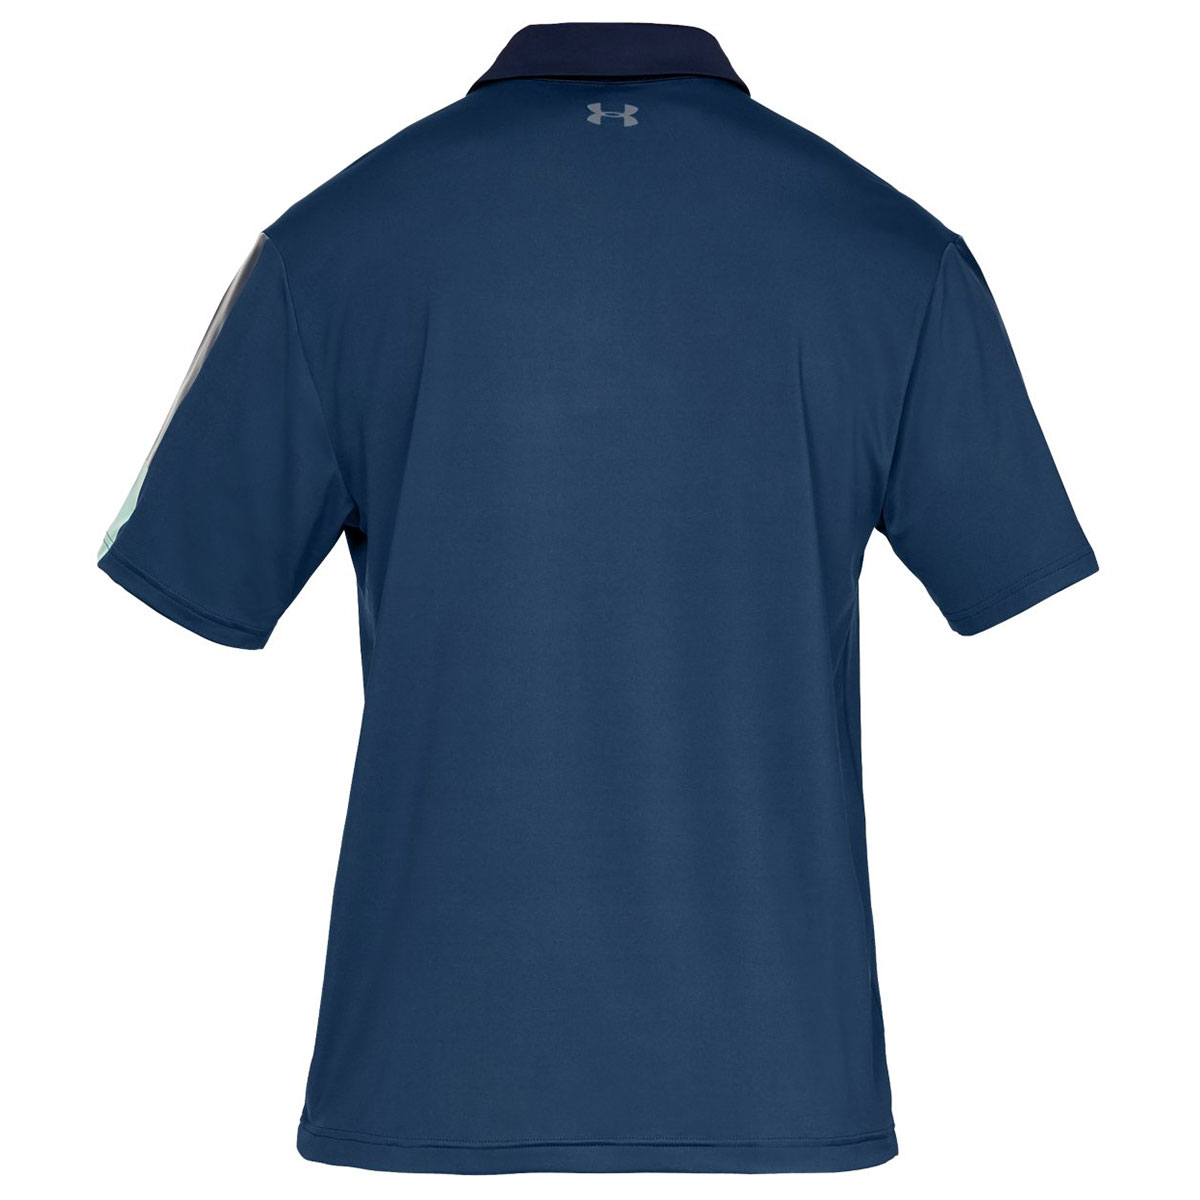 Under-Armour-Mens-2019-Playoff-Polo-2-0-Breathable-Light-Stretch-Polo-Shirt thumbnail 101